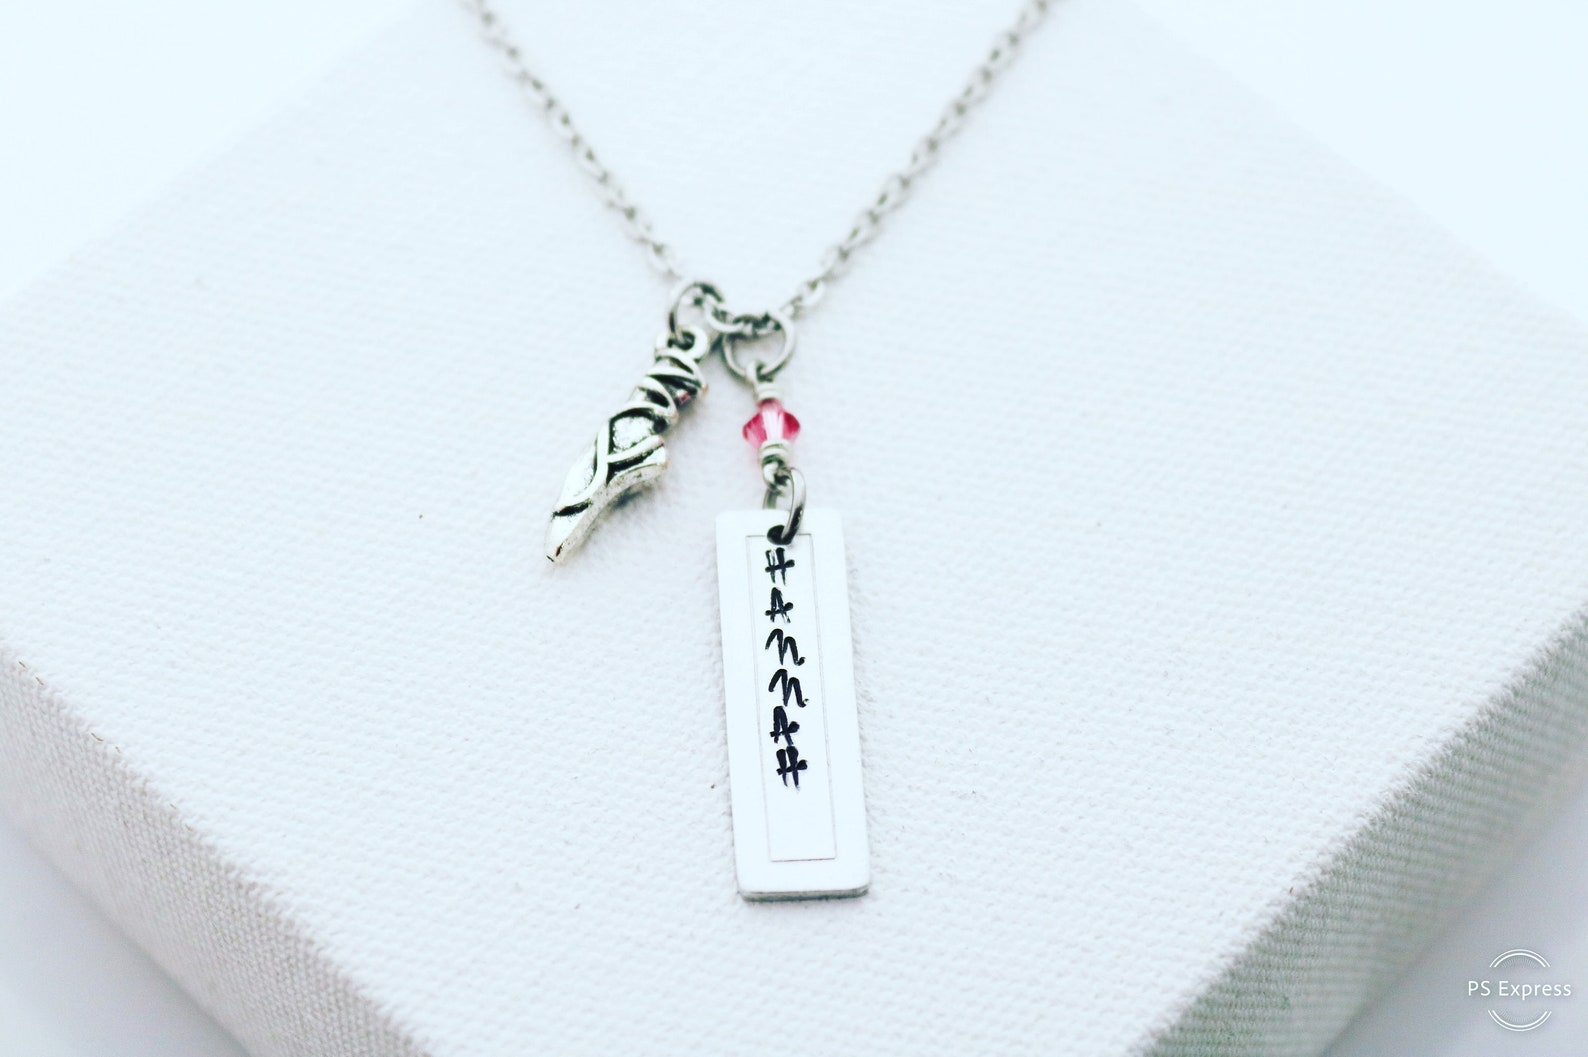 ballet necklace/ ballet jewelry/ ballet necklace/ personalized ballet gift/ ballet dance gift/ ballet gifts/ pointe shoe charm/